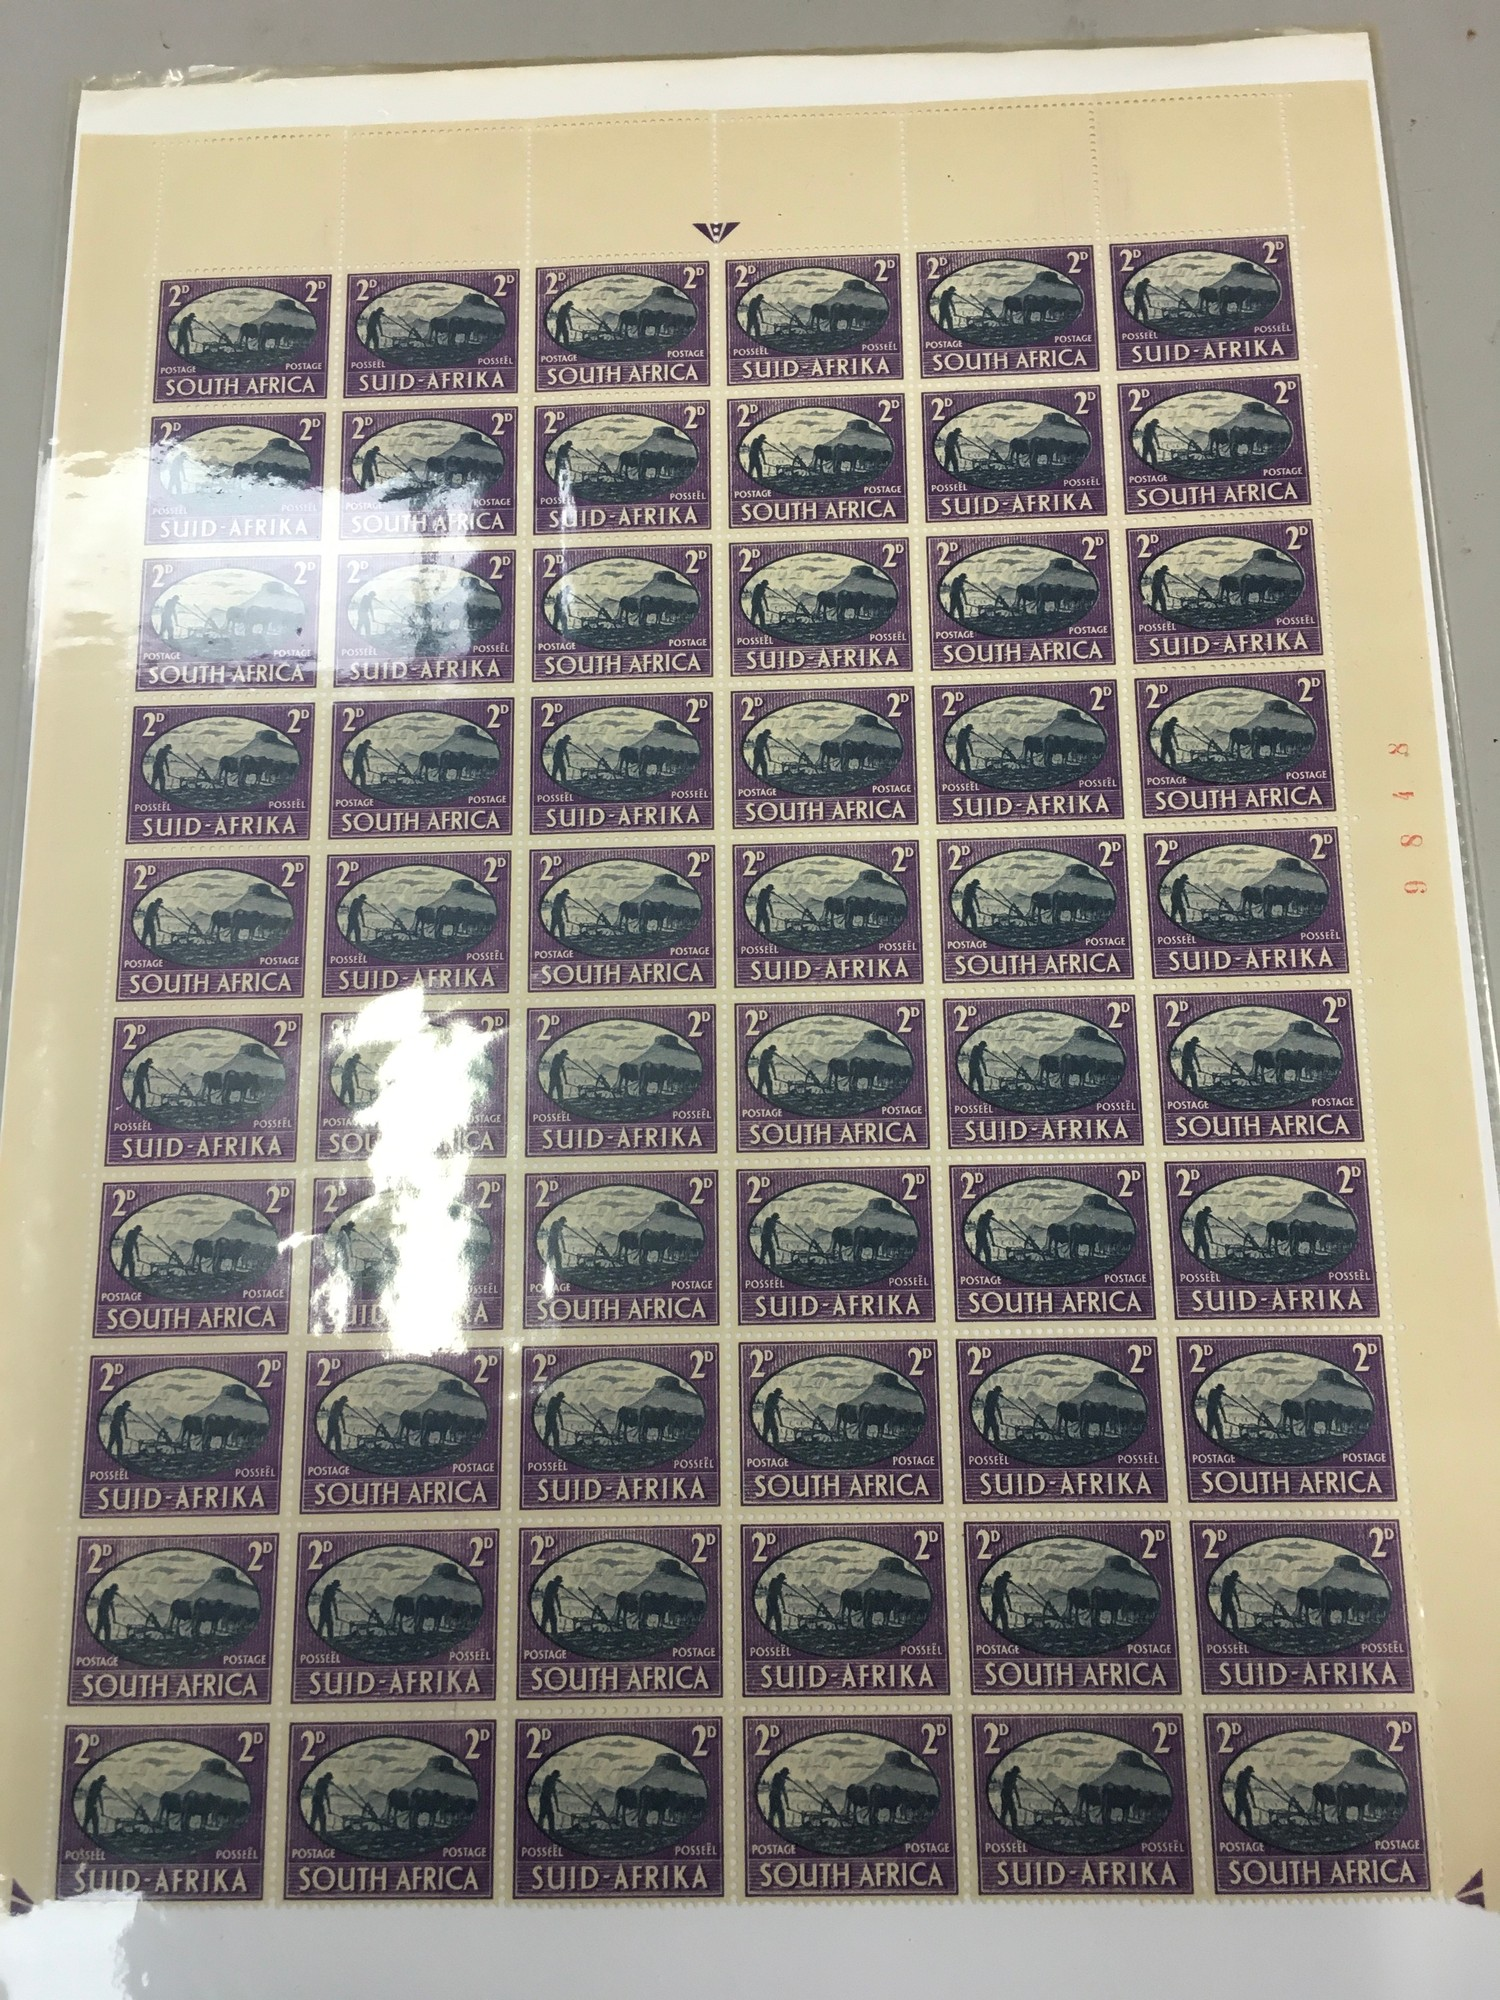 South Africa and states stamps - Image 14 of 14